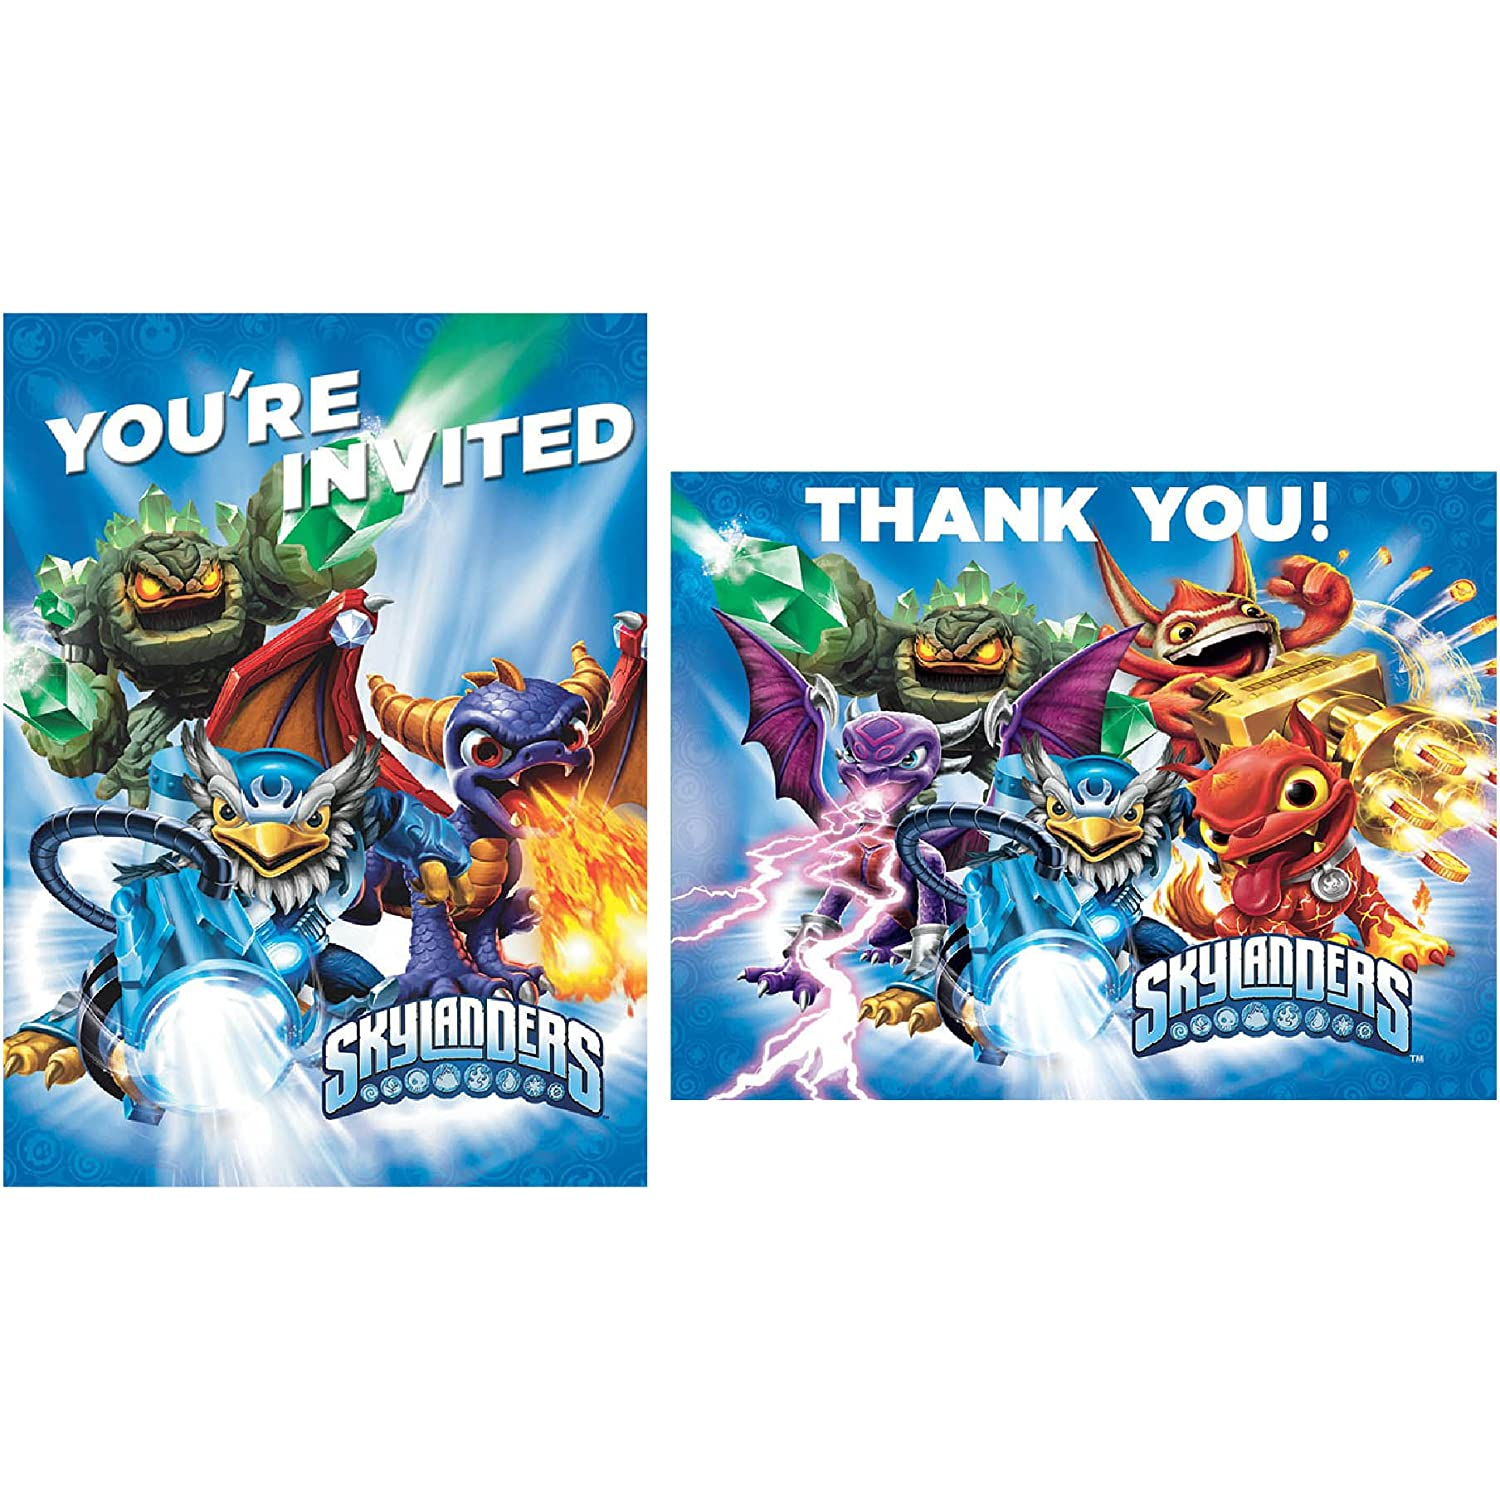 Amazon skylanders invite thank you note cards 8 each amazon skylanders invite thank you note cards 8 each invitations birthday party toys games bookmarktalkfo Choice Image